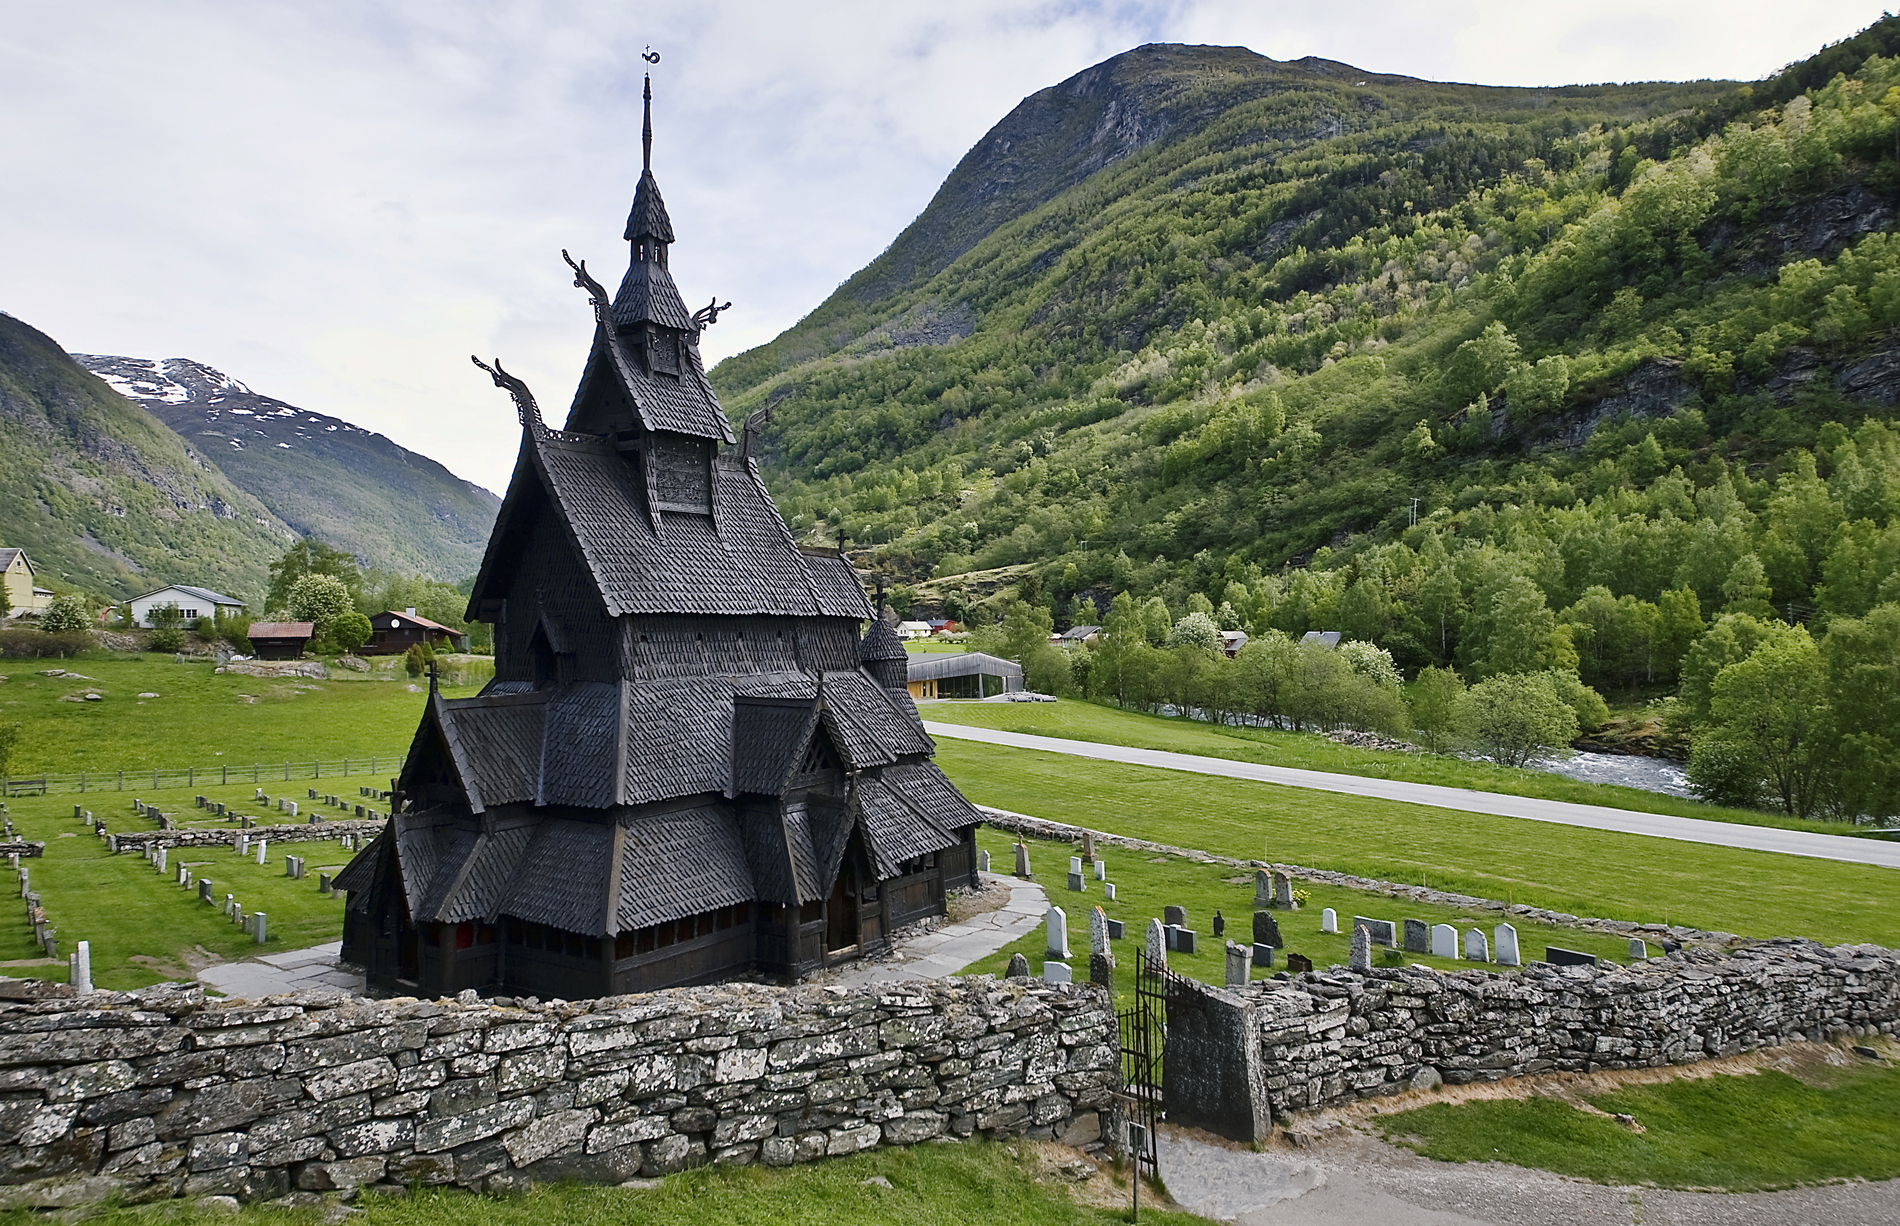 borgund-stave-church-norway-20